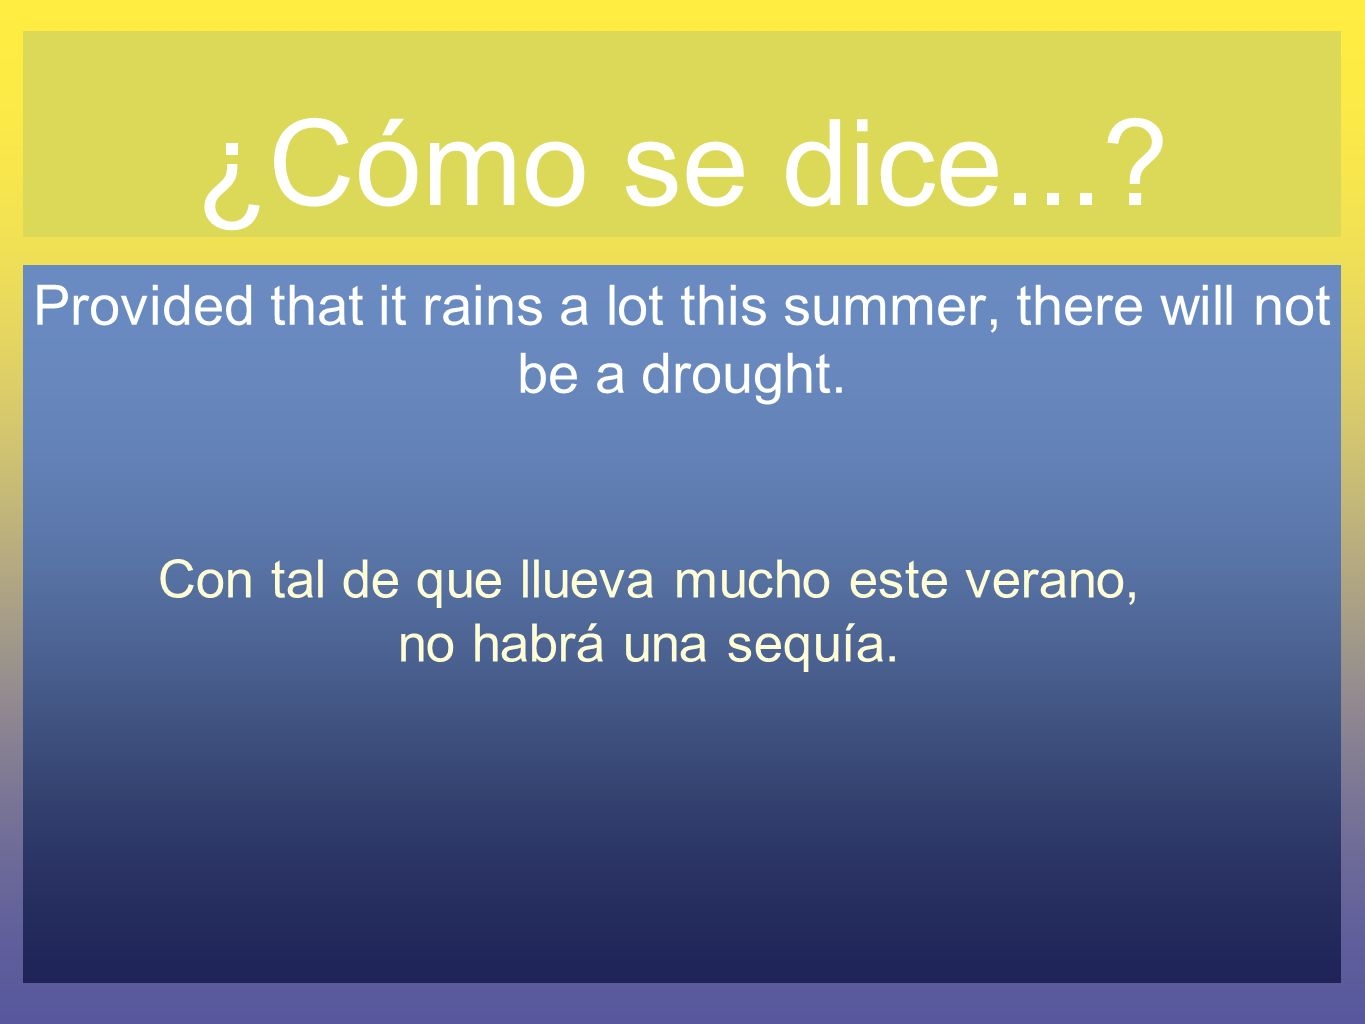 ¿Cómo se dice... Provided that it rains a lot this summer, there will not be a drought.